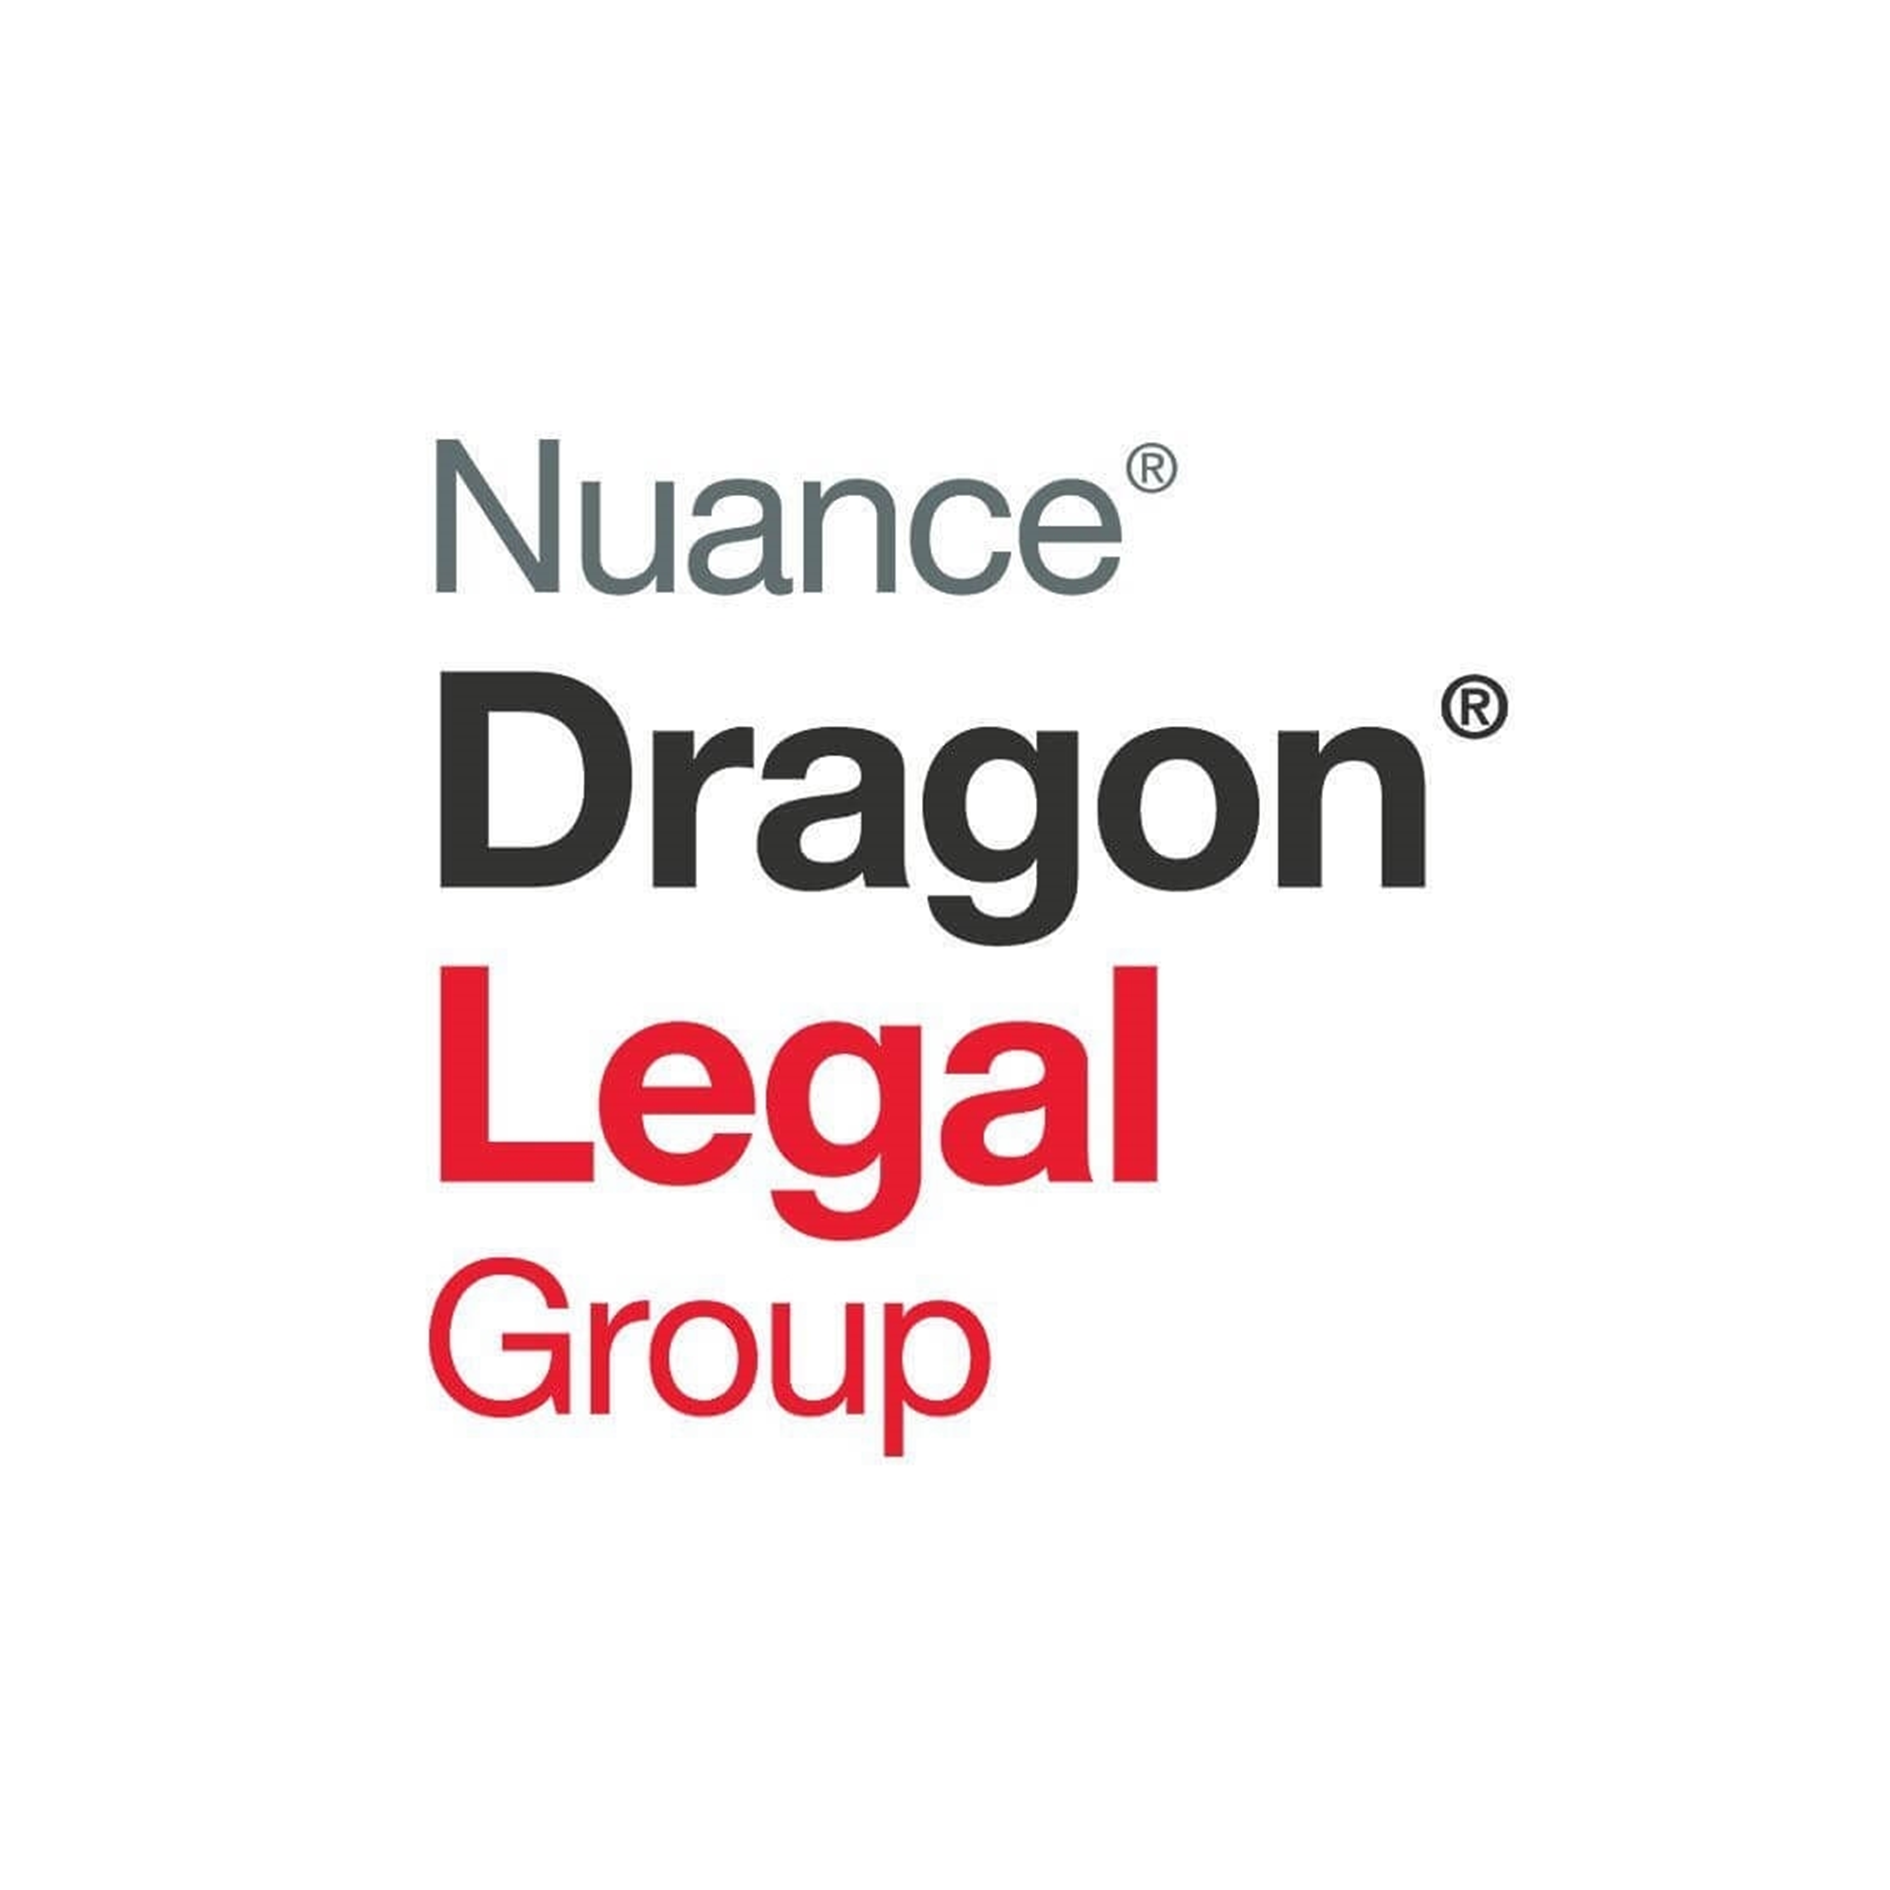 Claus Michael Sattler - Dragon Legal Group - Spracherkennung